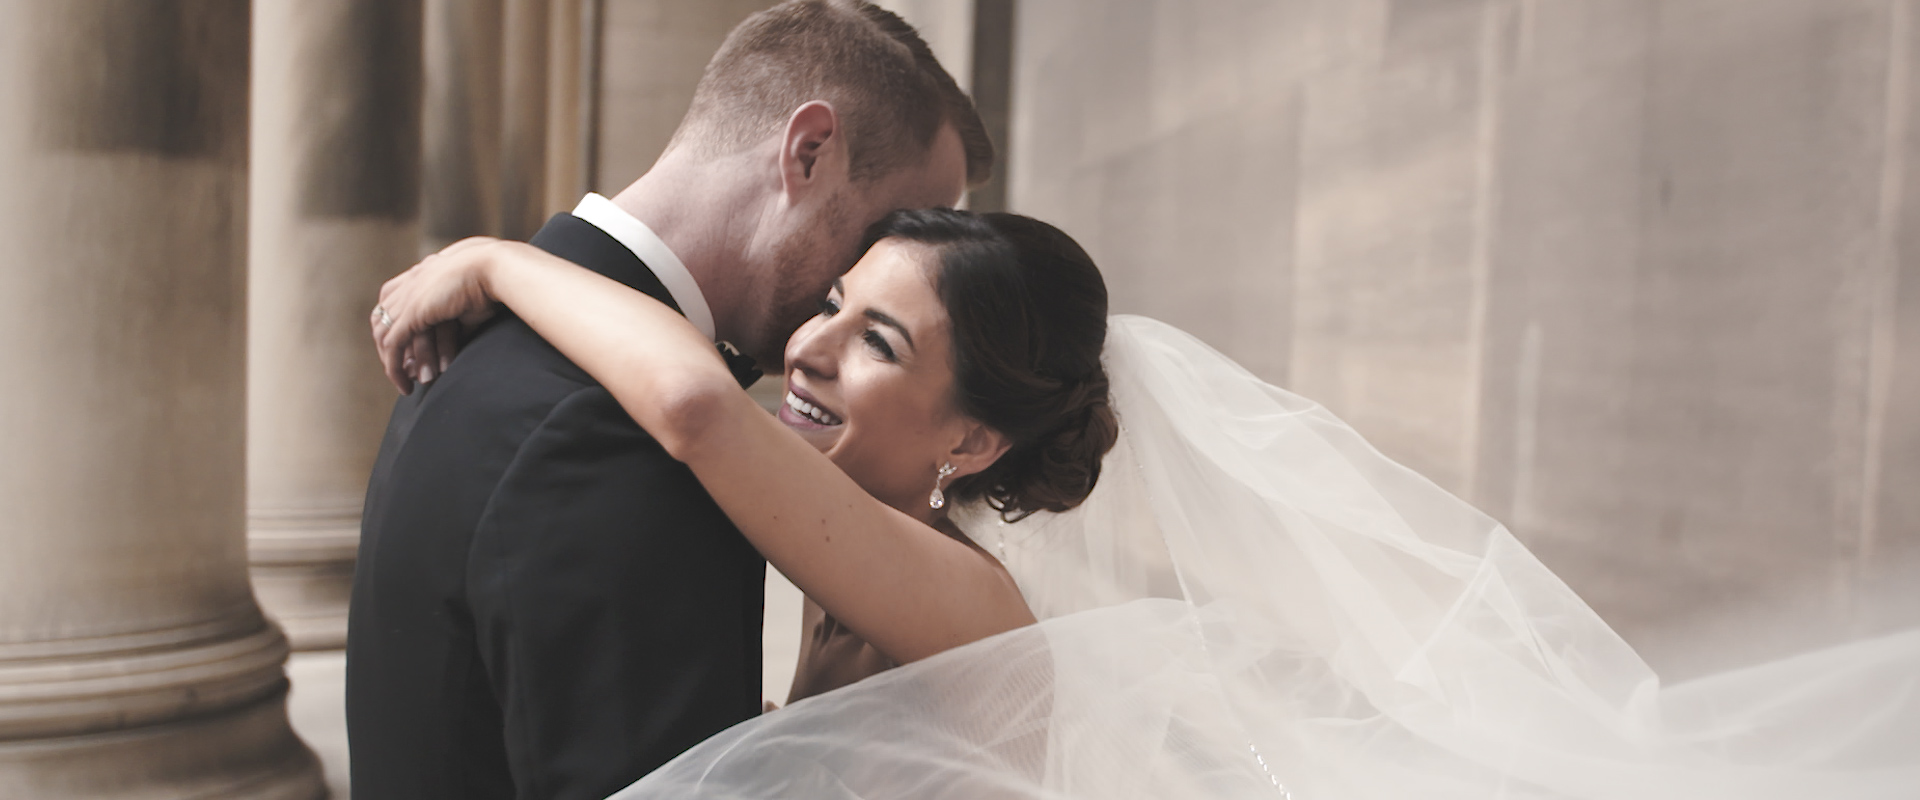 Stephanie + Brendan | Pittsburgh, Pennsylvania | Carnegie Music Hall Foyer